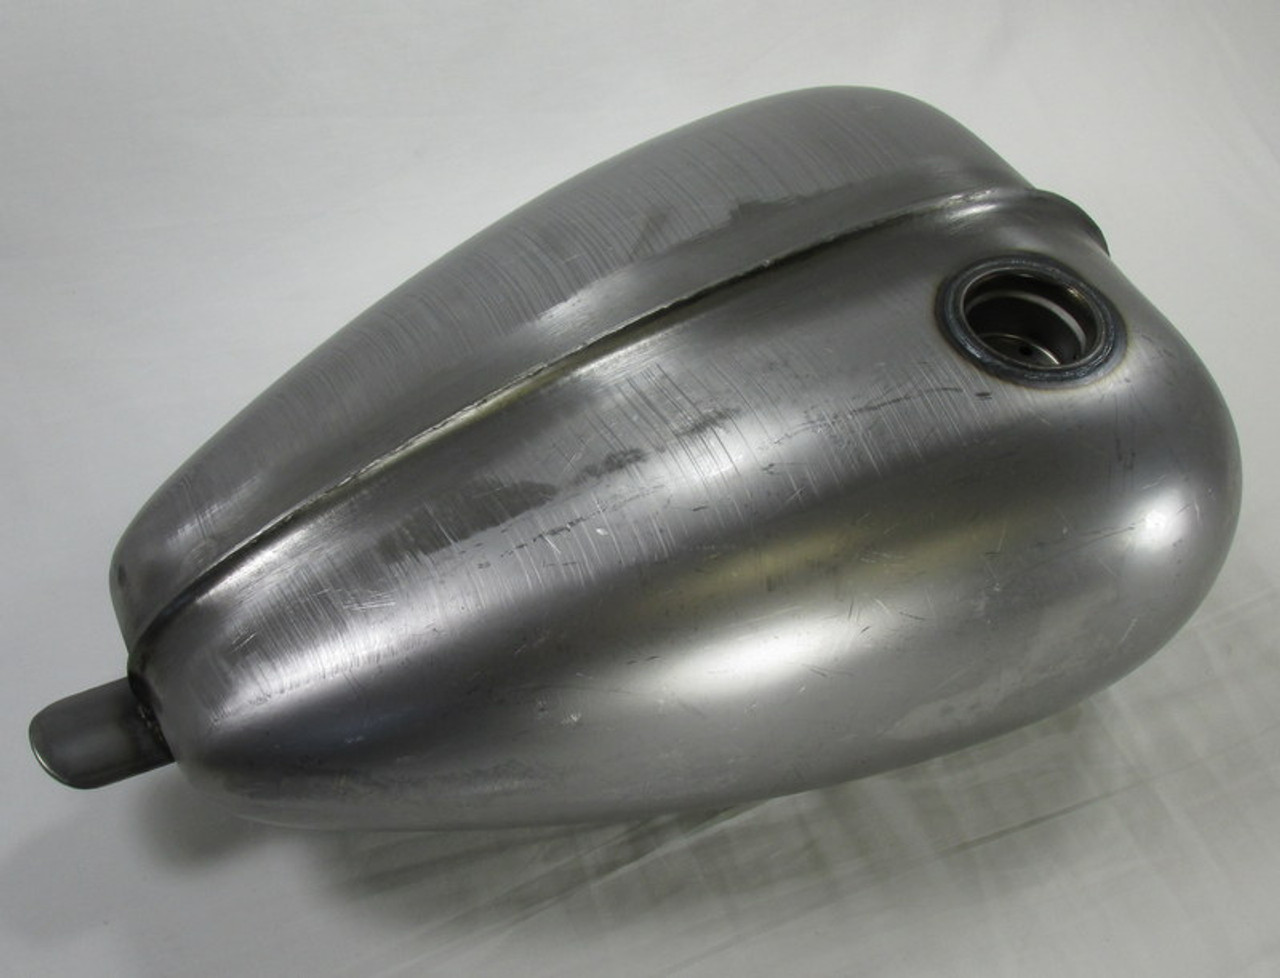 Ribbed Mustang Chopper Bobber Custom Build Gas Tank - Steel - 3.3 ...